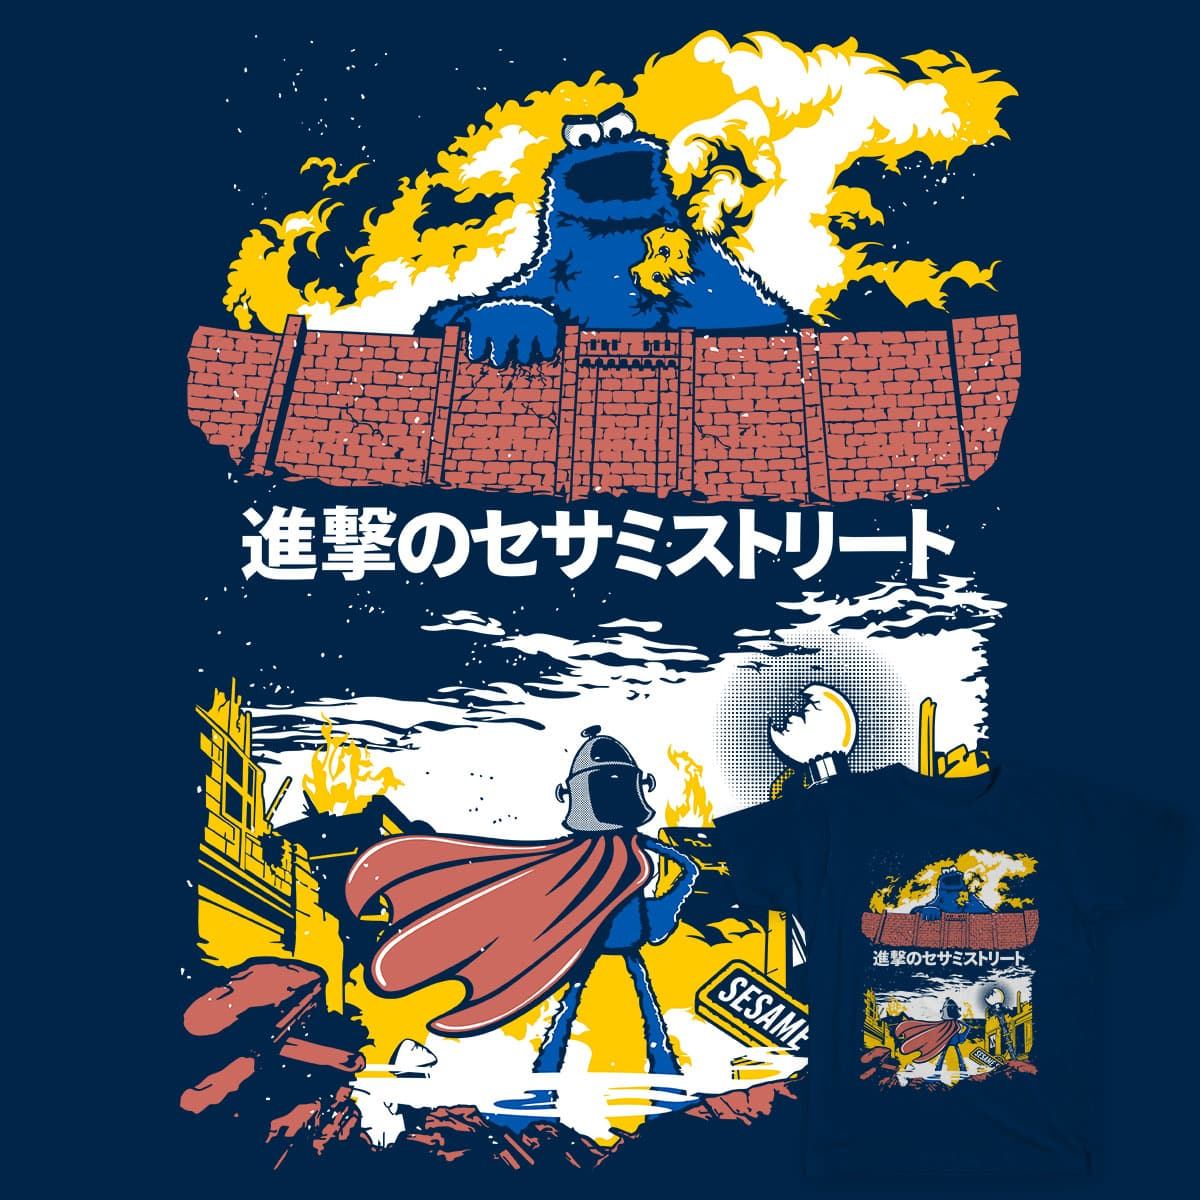 Attack on Sesame Street by Olipopart on Threadless